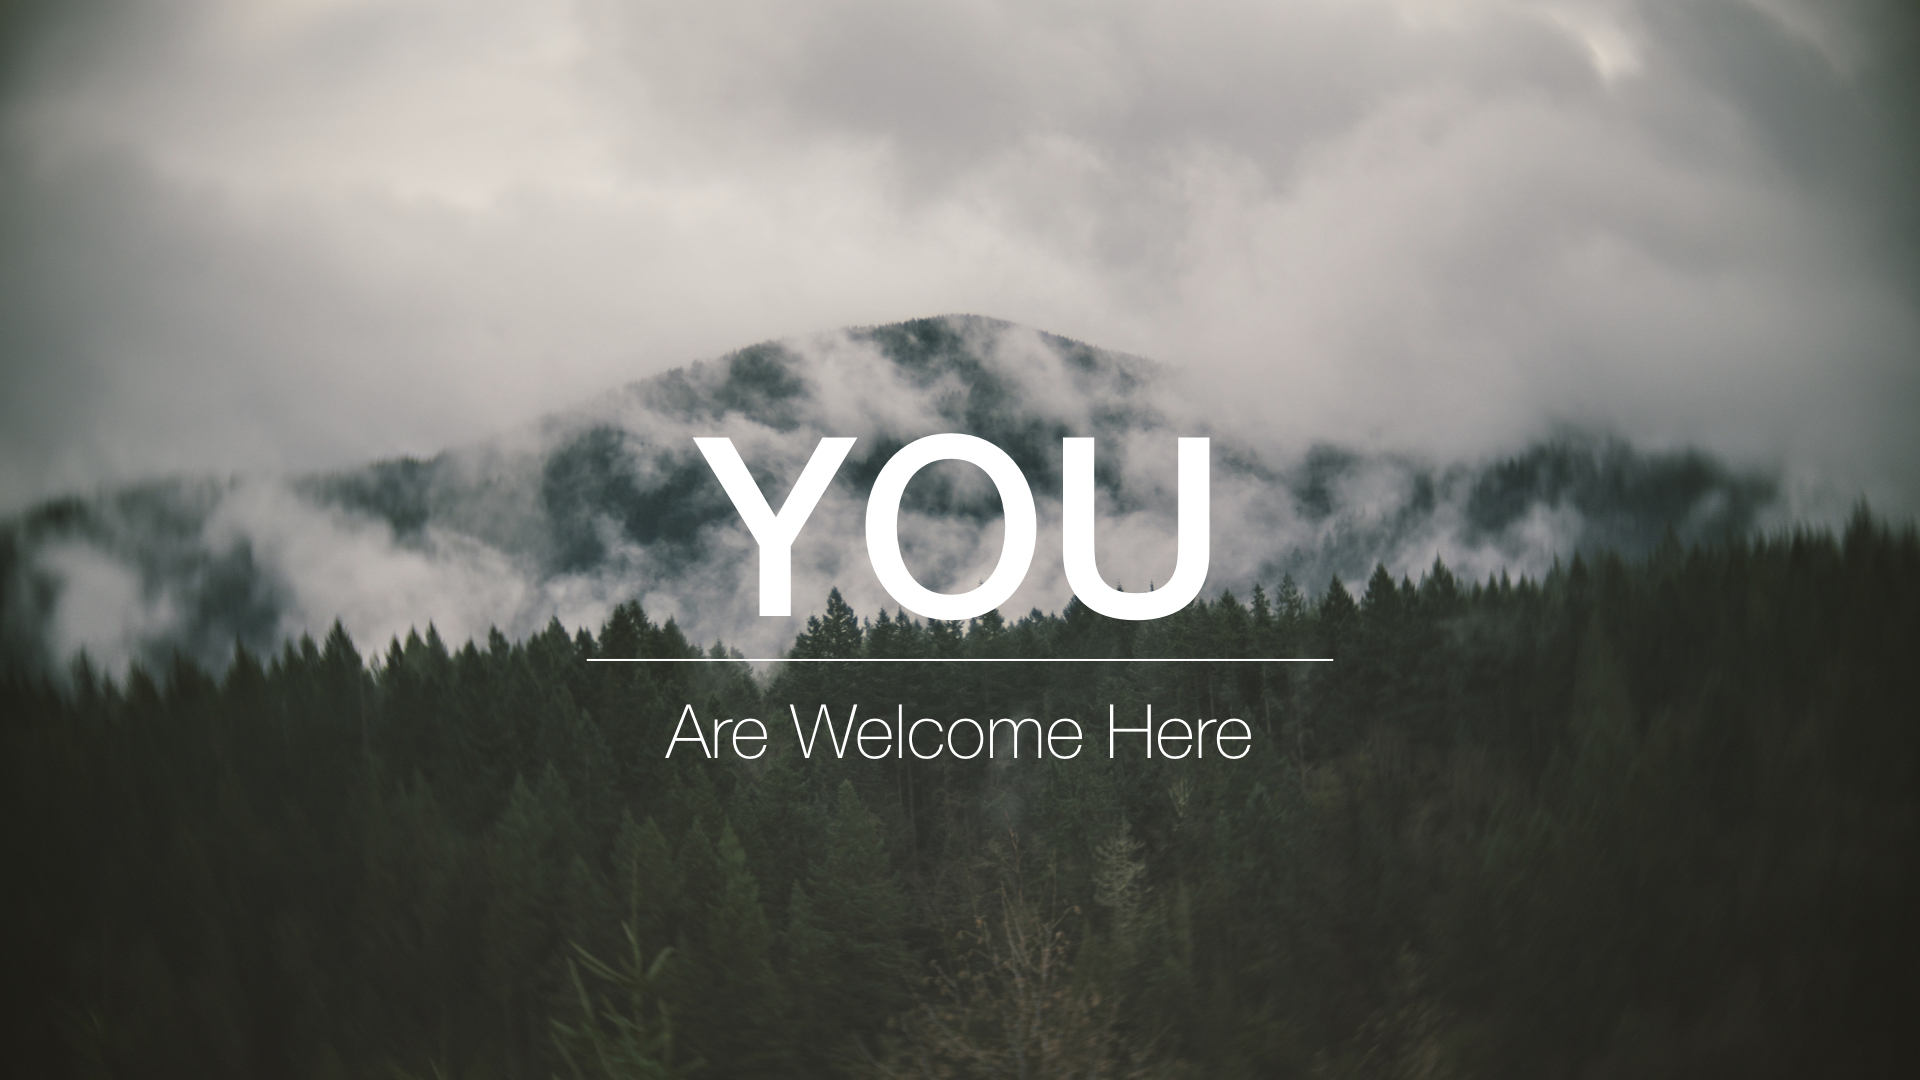 You are Welcome here.001